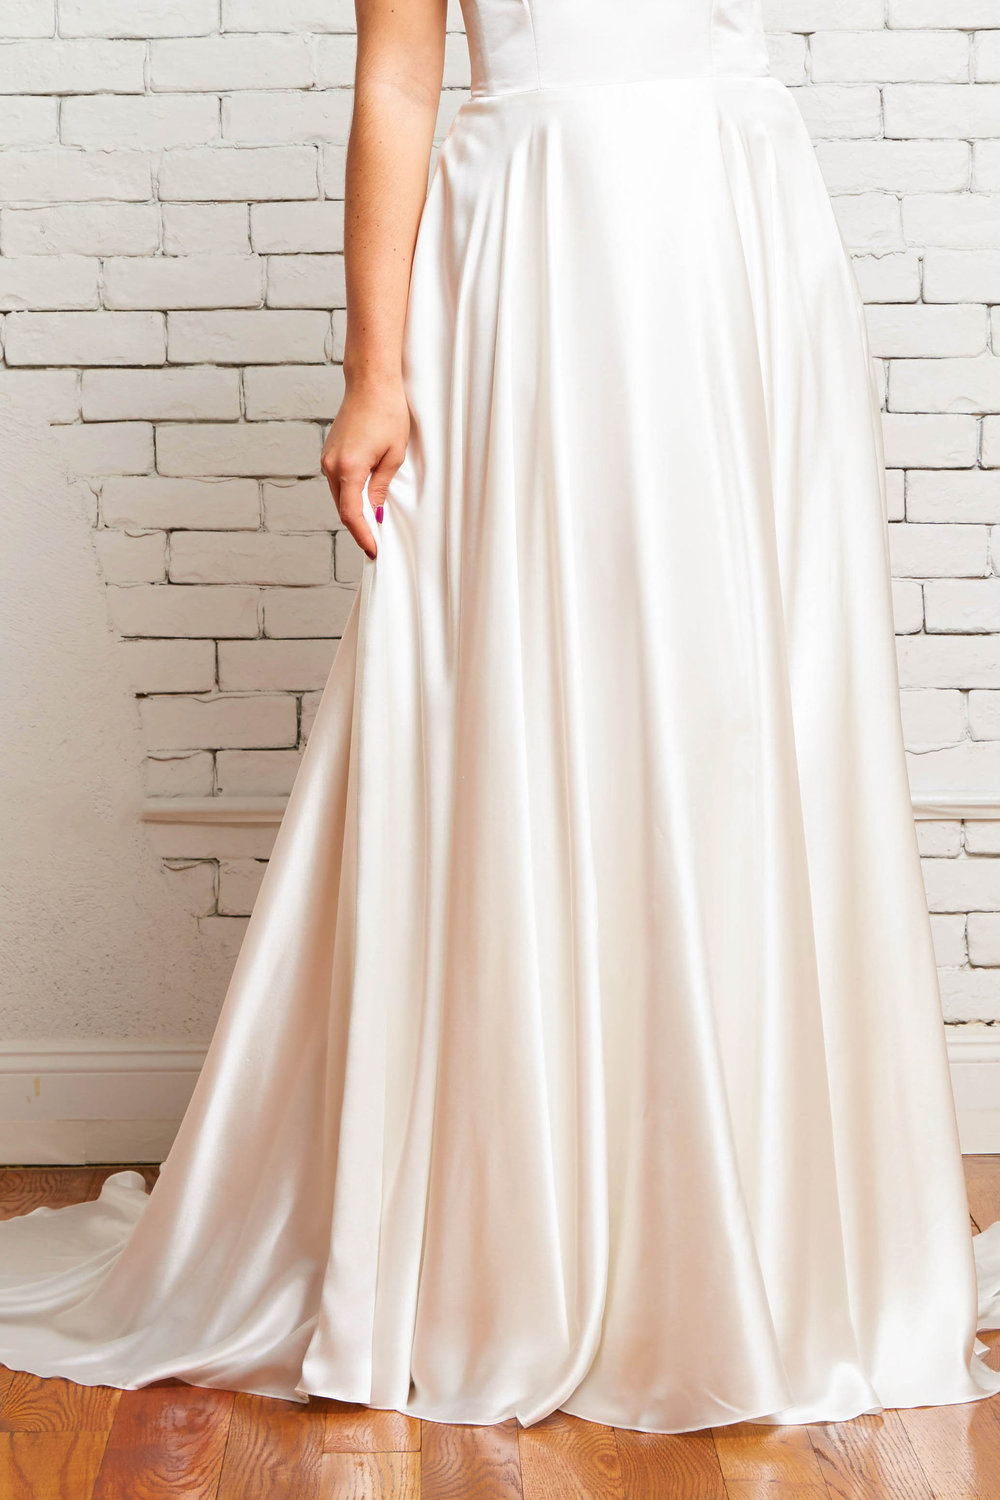 7C Maya Front Skirt-Rebecca Schoneveld-Satin_Wedding_A-line_Skirt_Modern_Beauty.jpg